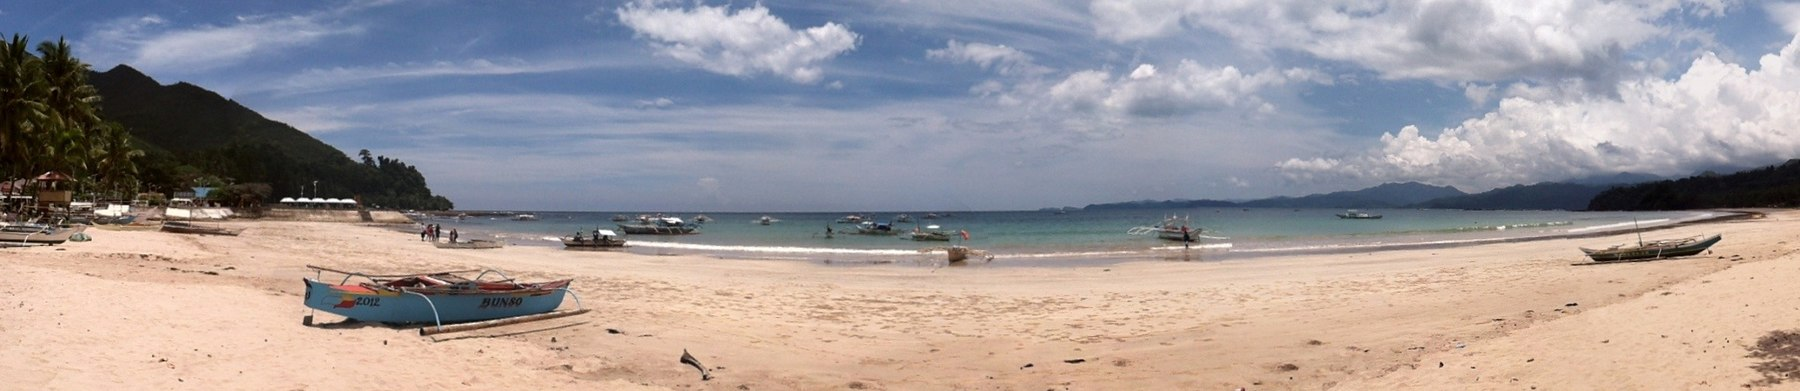 Sabang Beach Panorama.jpg